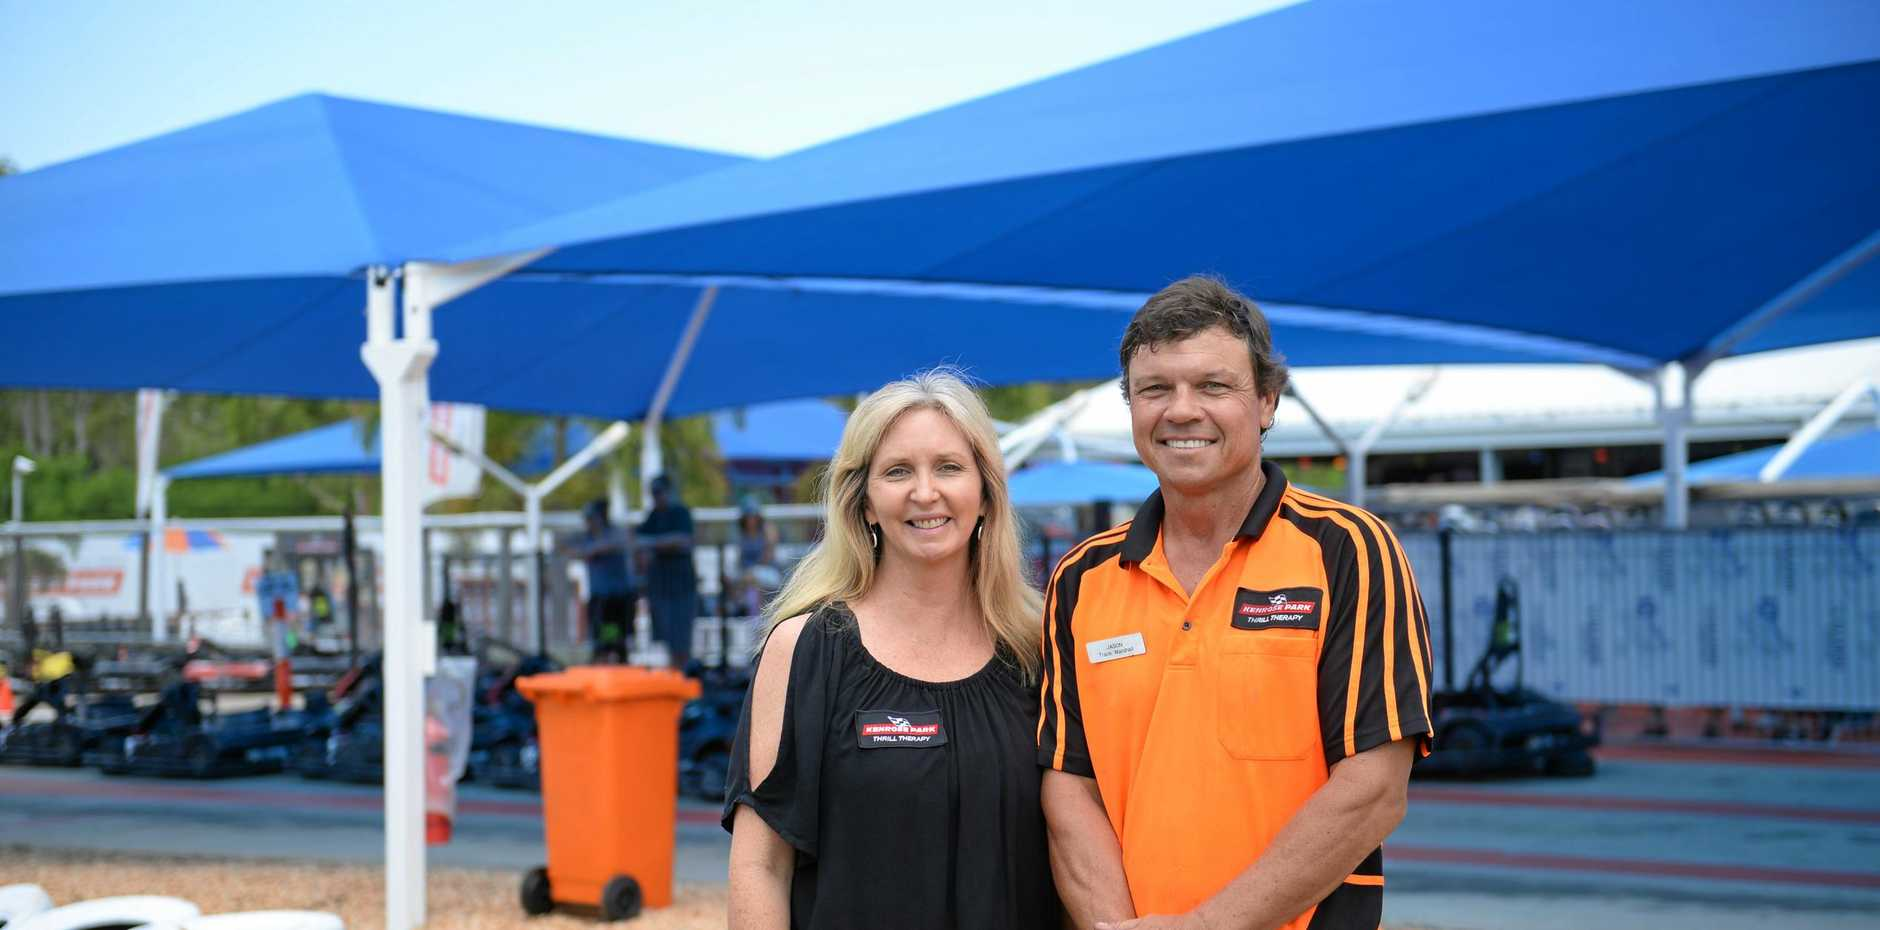 GREAT OPPORTUNITY: Kim and Jason Rose, owners of Kenrose Park, are asking for 'expressions of interest' for the ownership of their track.